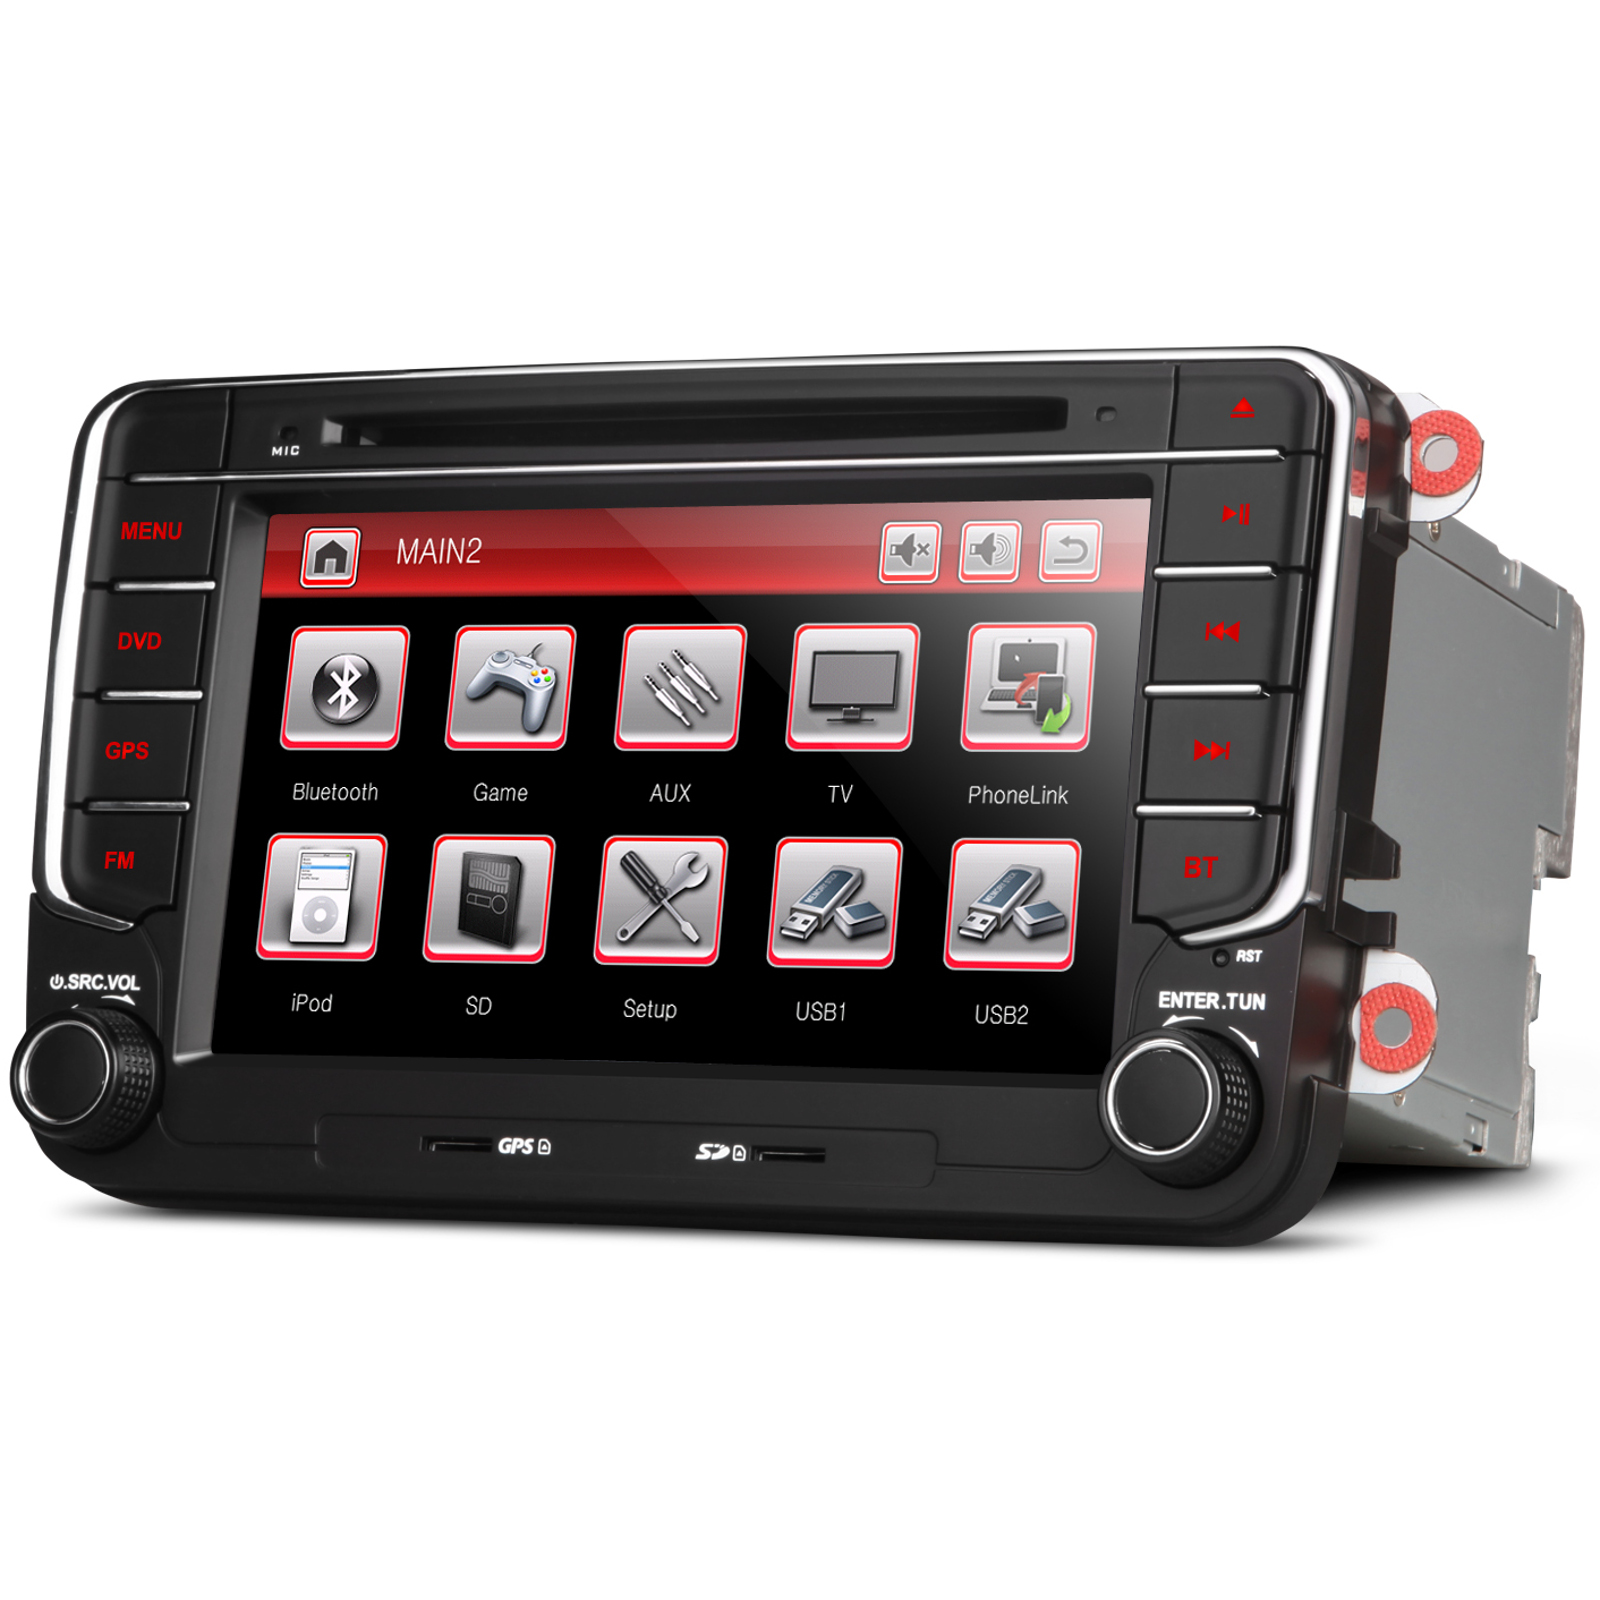 vw caddy bora eos rns510 style stereo gps kudos satnav. Black Bedroom Furniture Sets. Home Design Ideas